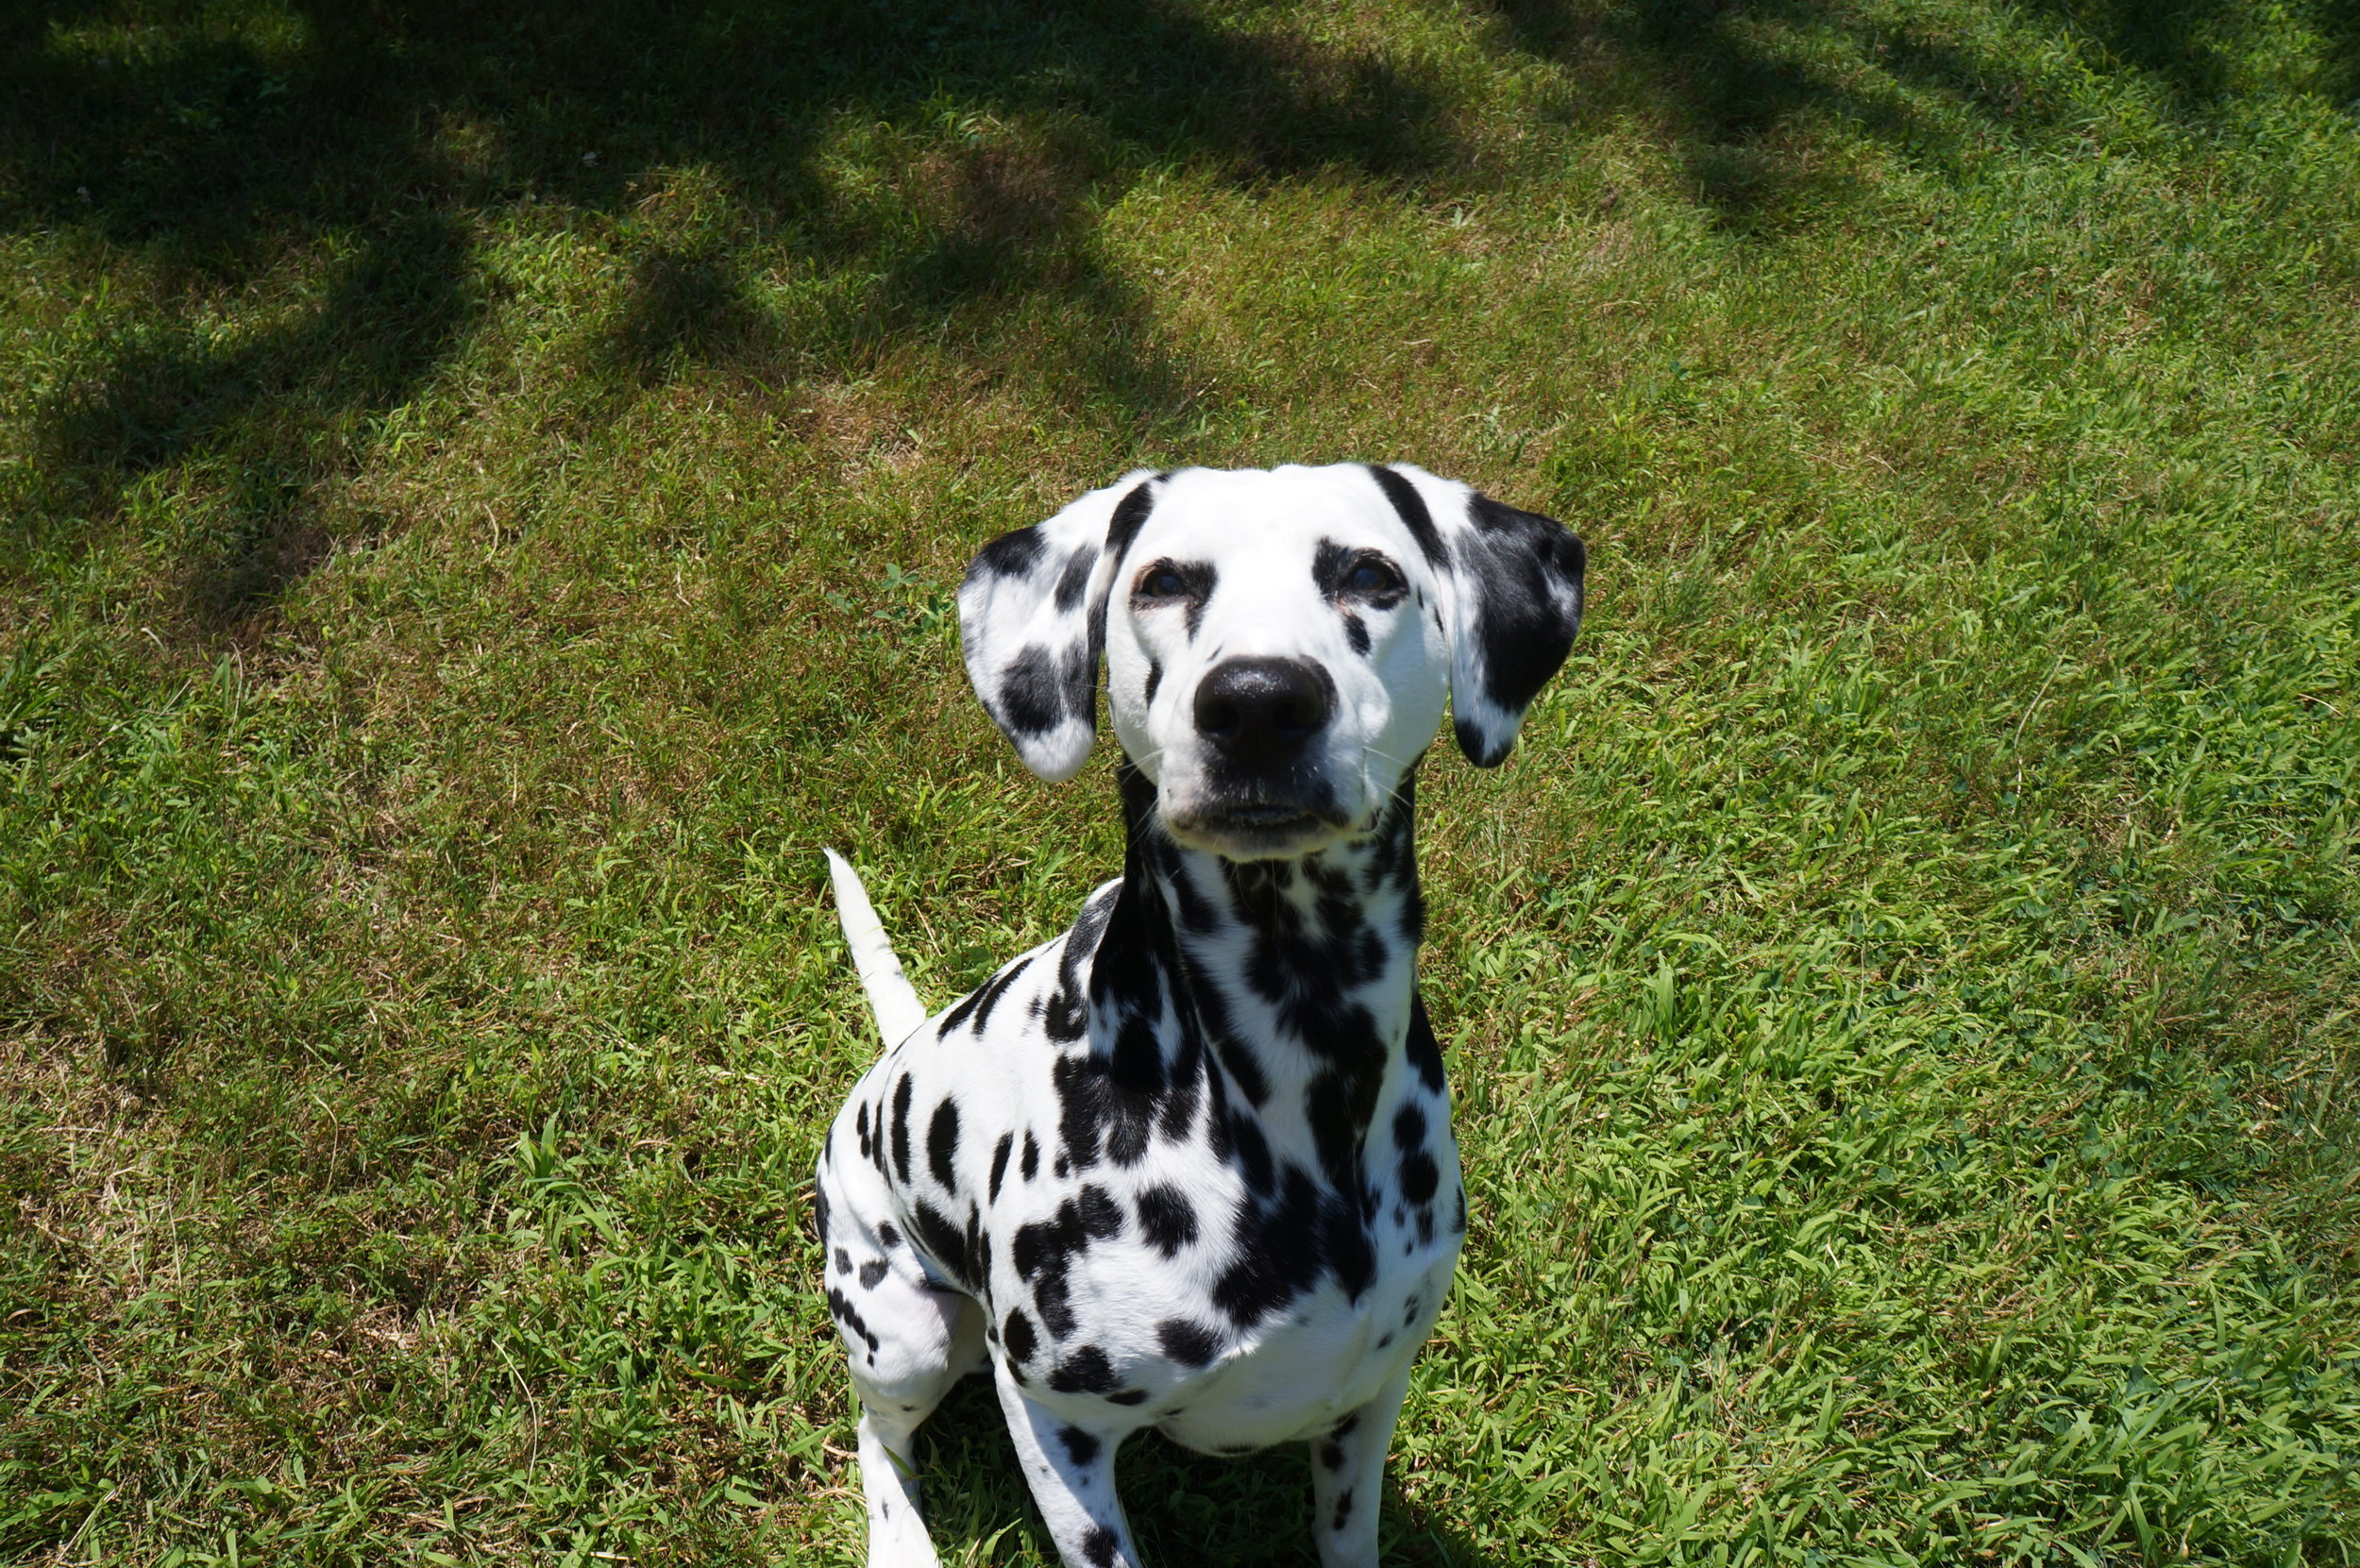 Judea, deaf dog, waits to be told that she can play.